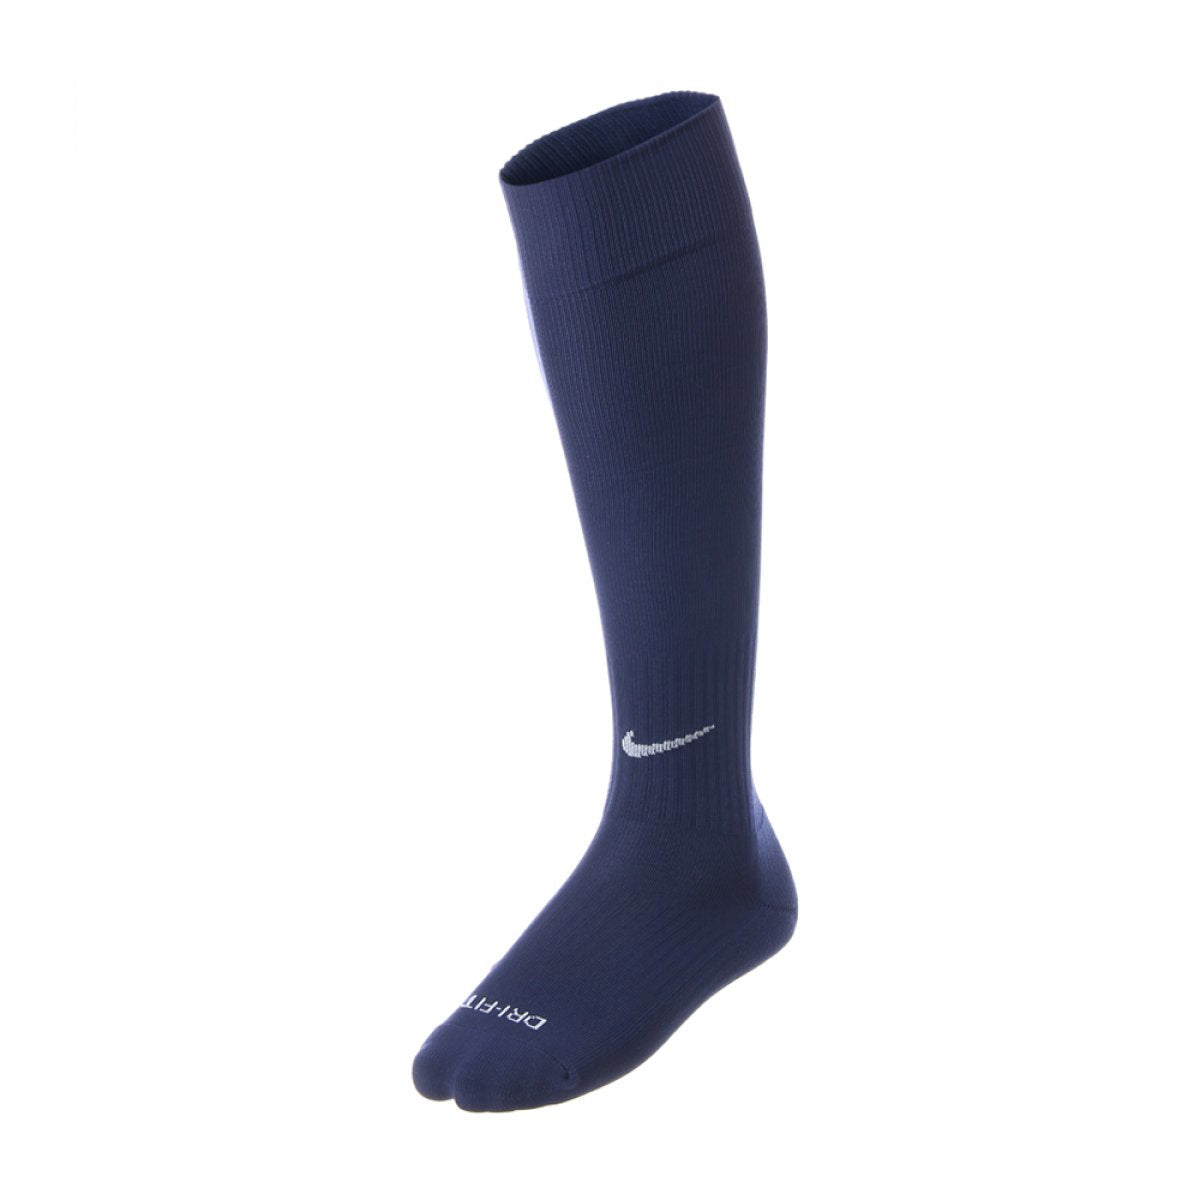 NIKE CLASSIC FOOTBALL DRI-FIT- SMLX MIDNIGHT NK SX4120-401 (AZUL MARINO)